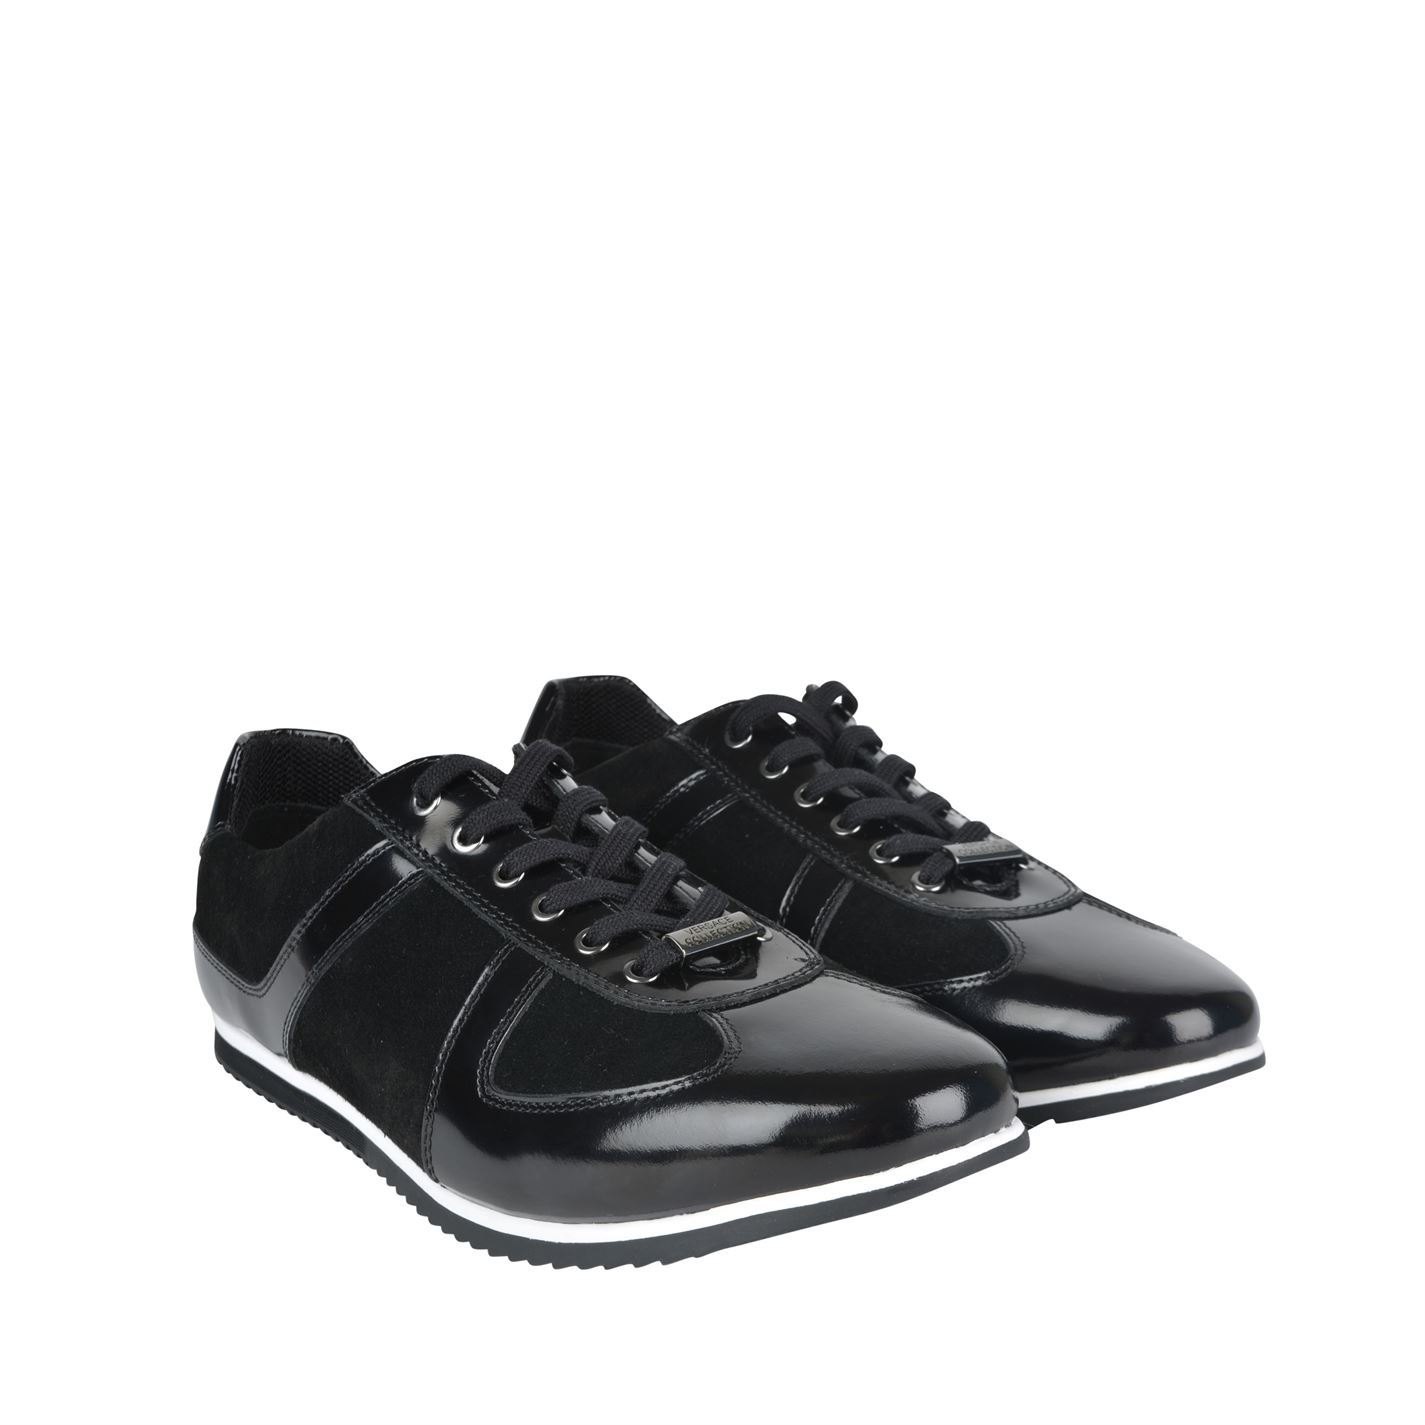 Versace Mens Shoes Amazon